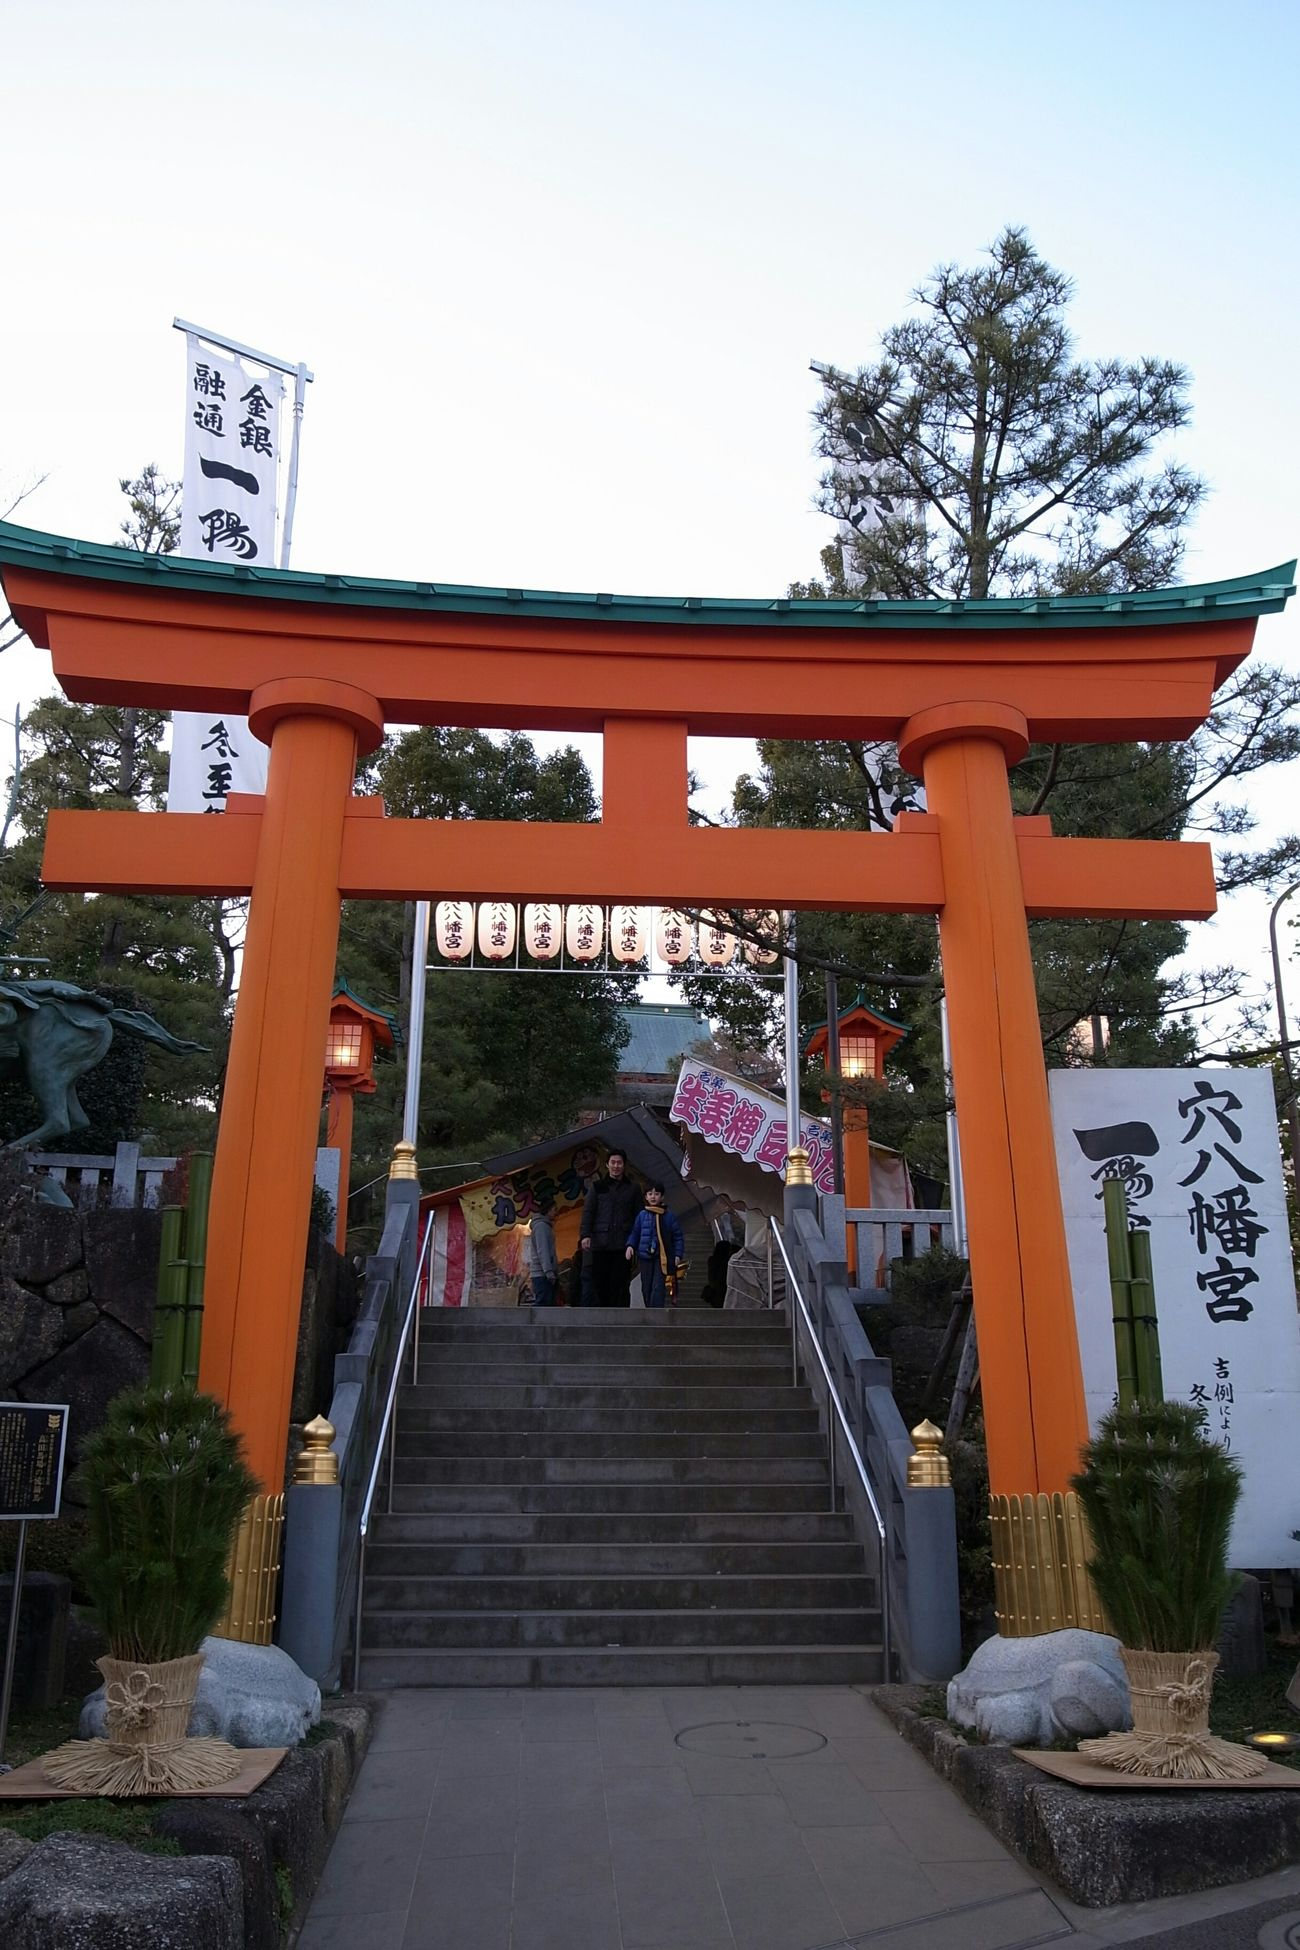 Japanese Shrine TORII Landscape Sunday Evening New Year Traditional Ricoh GRD III びっくりするほど立派な神社でした!